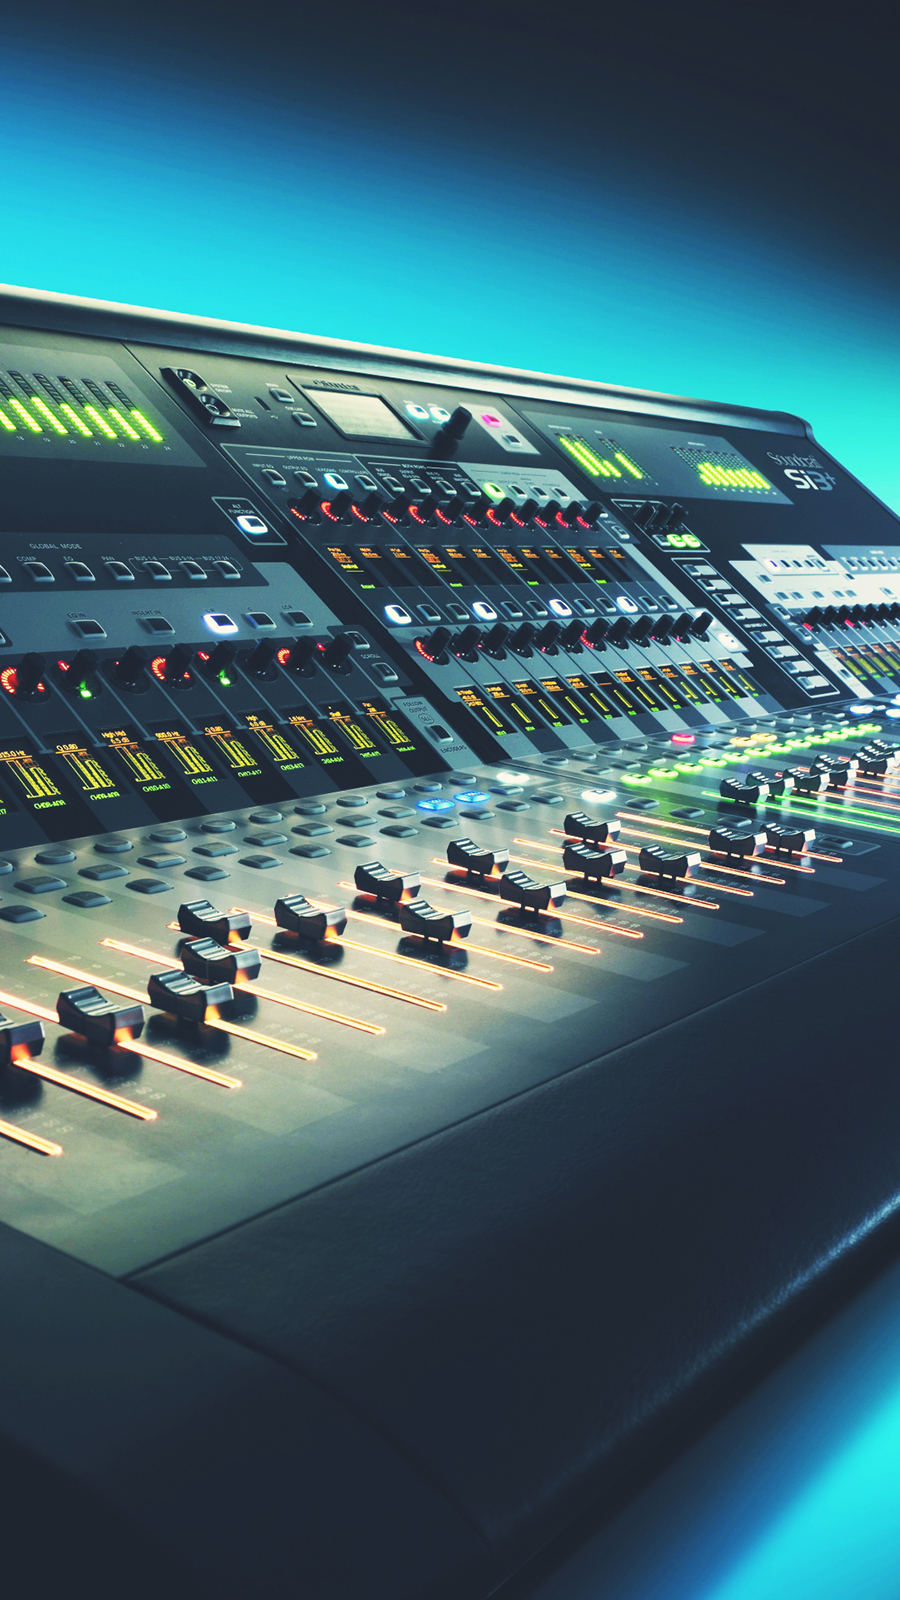 Digital Mixing Console HD Wallpapers Free Download